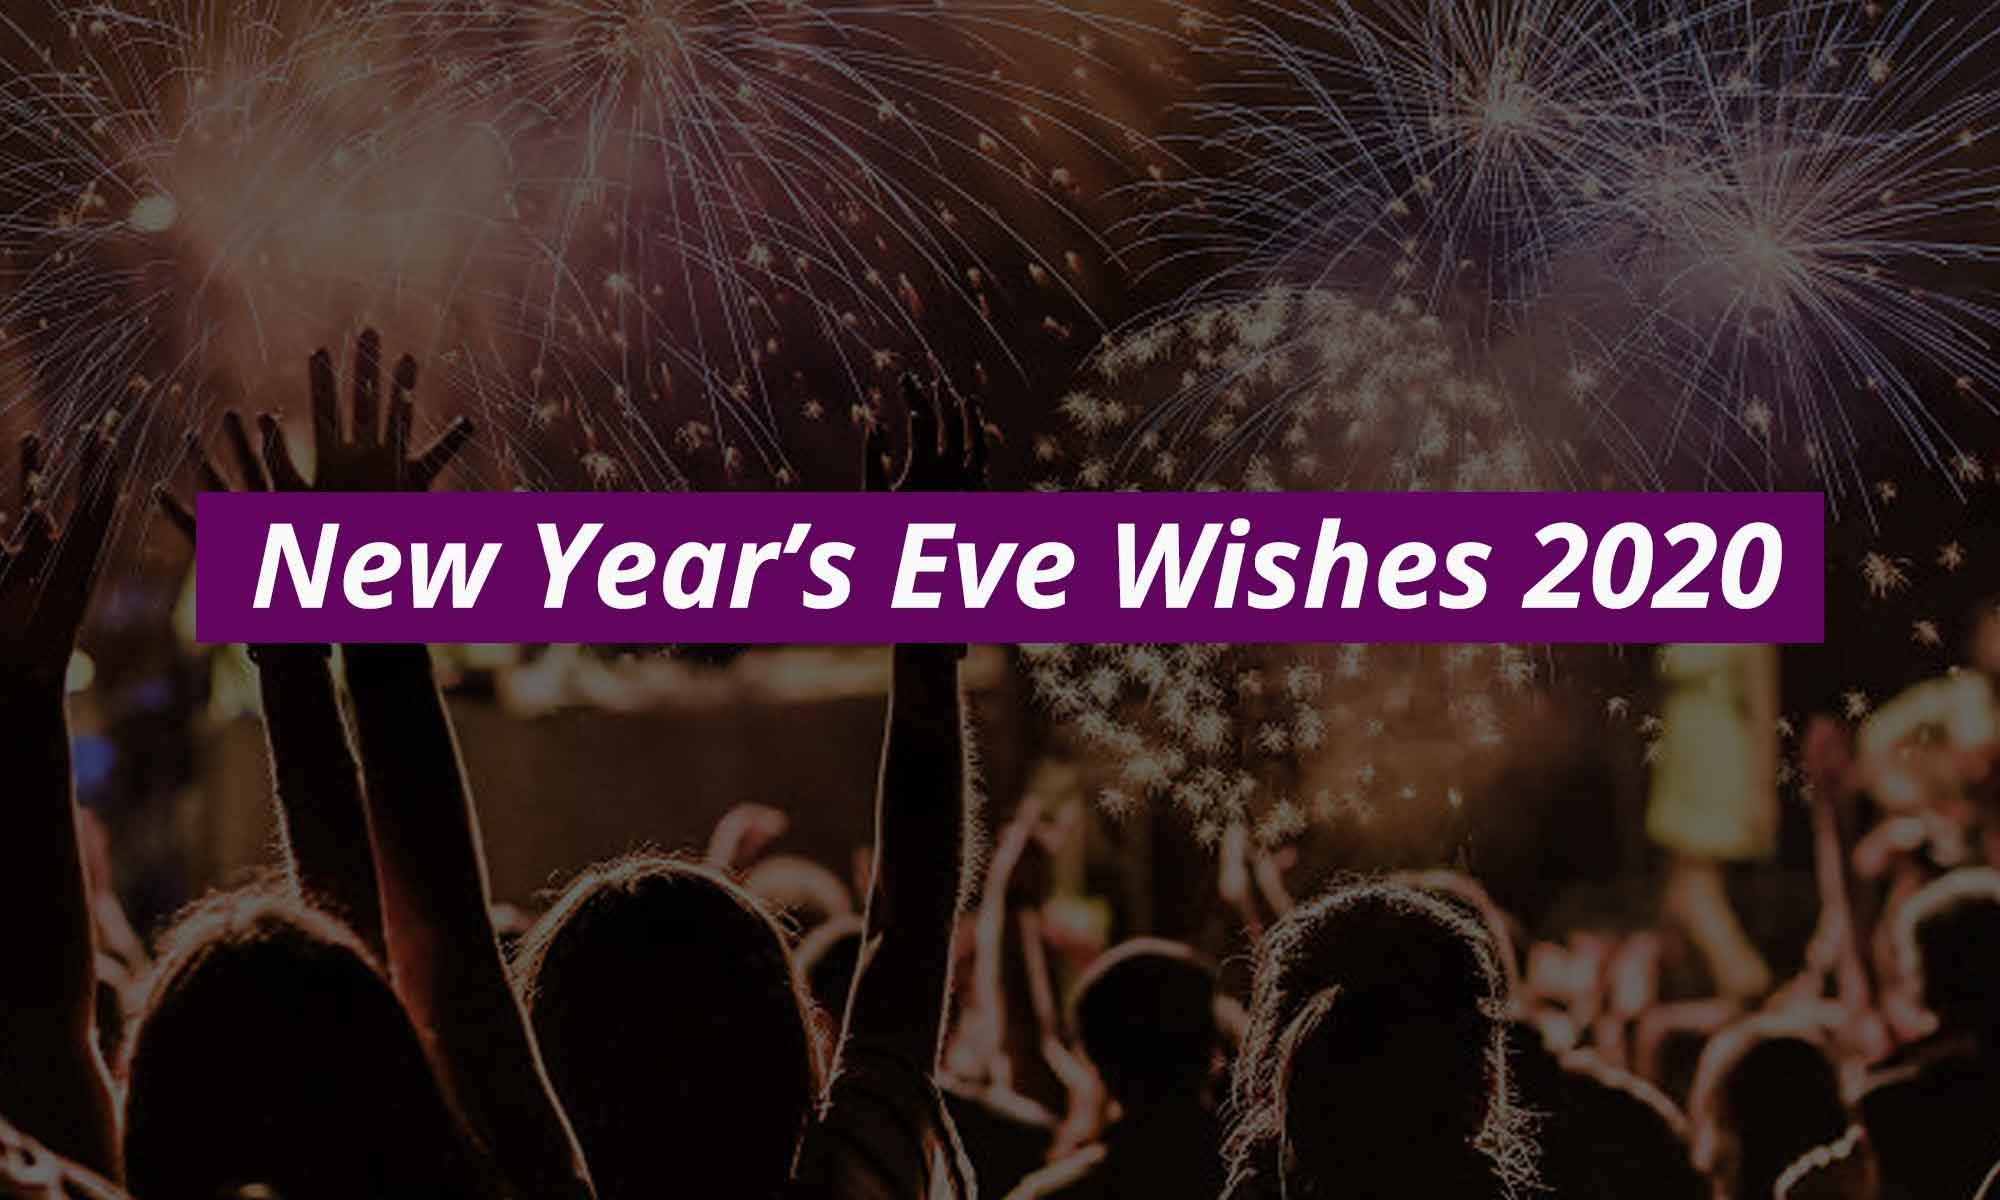 New Year's Eve Wishes 2020